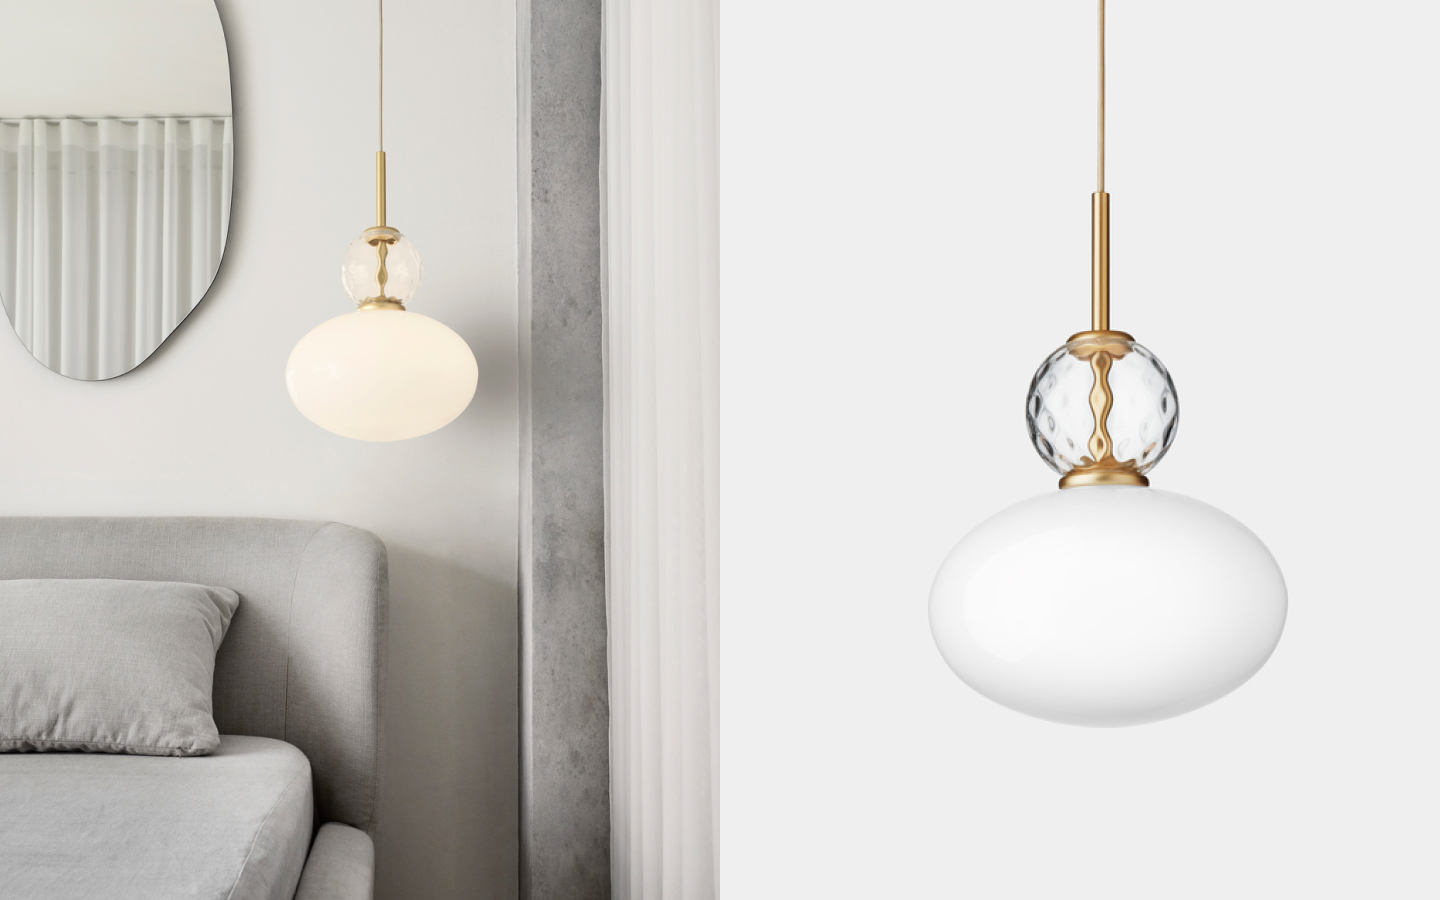 Pendant light with opaque glass shade and decorative textured glass bulb